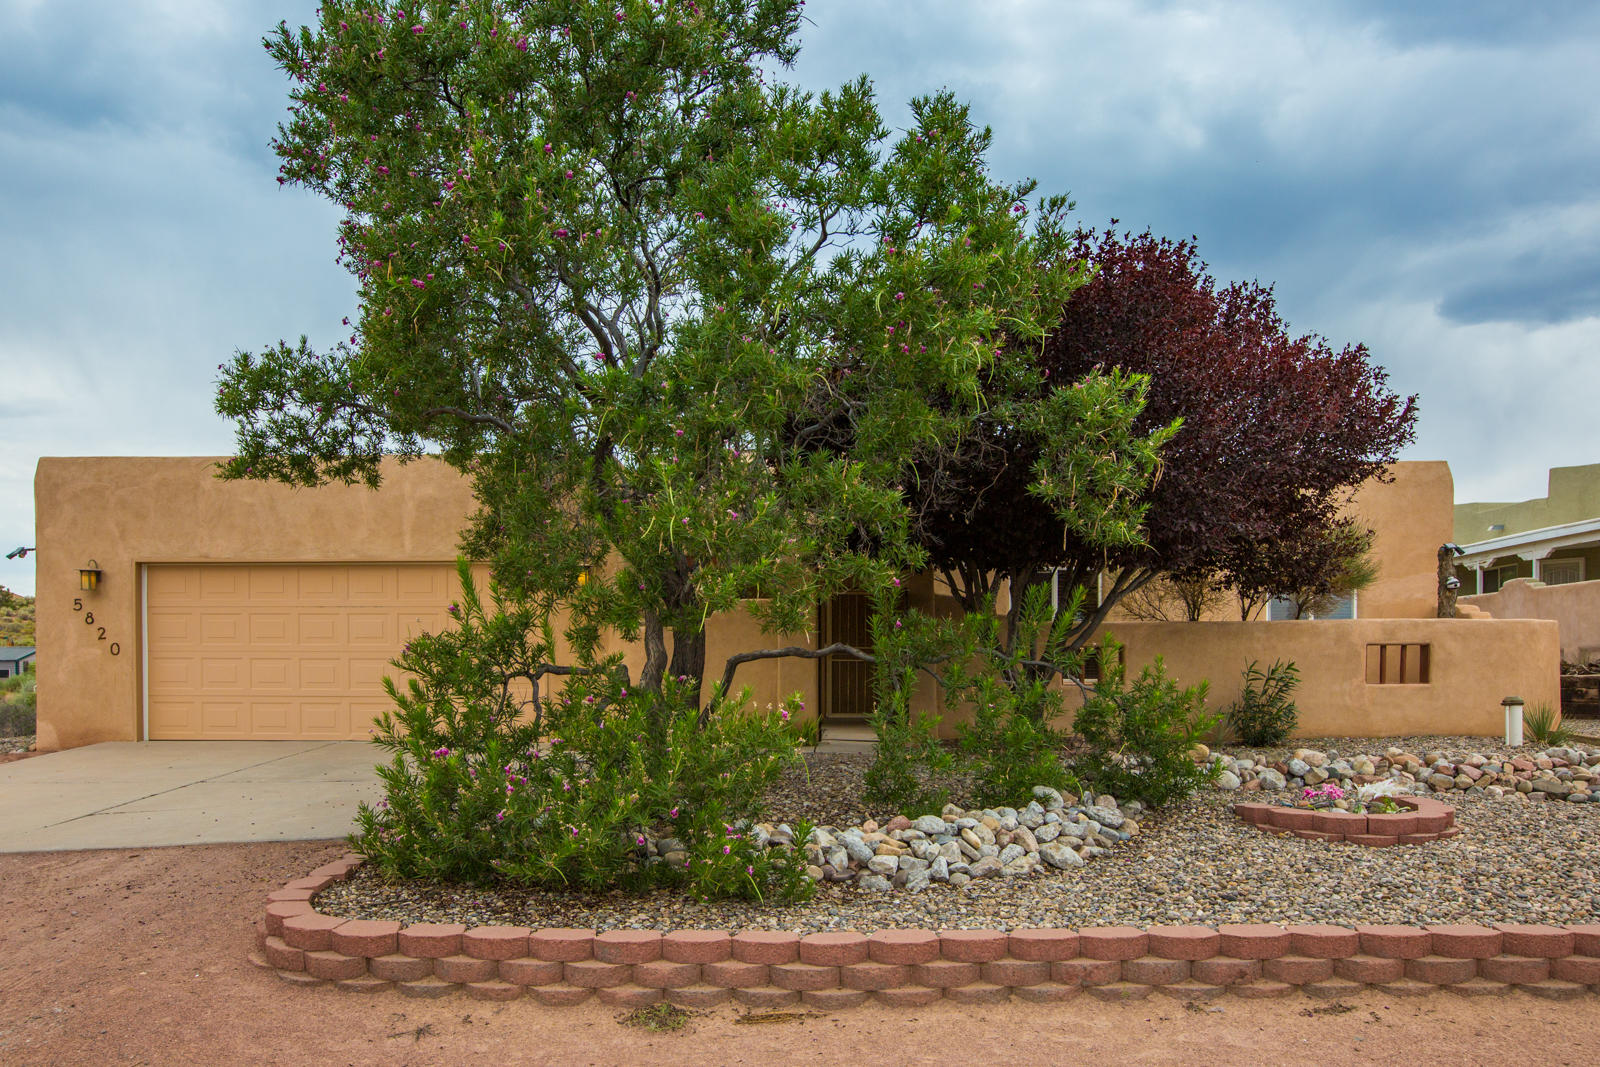 This amazing custom home is ready for it's next owner!  This well maintained home features three bedrooms including a large master suite.  The kitchen was just updated with granite counter tops and the entire home features tile and wood floors.  This pueblo style home has all the features you would expect including nichos, vigas and kiva style fire place.  This large half acre lot has a courtyard in the entry and a beautiful stucco wall and grass in the back.  A custom gate leads to the rest of the back yard with plenty of room for additional buildings or storage.